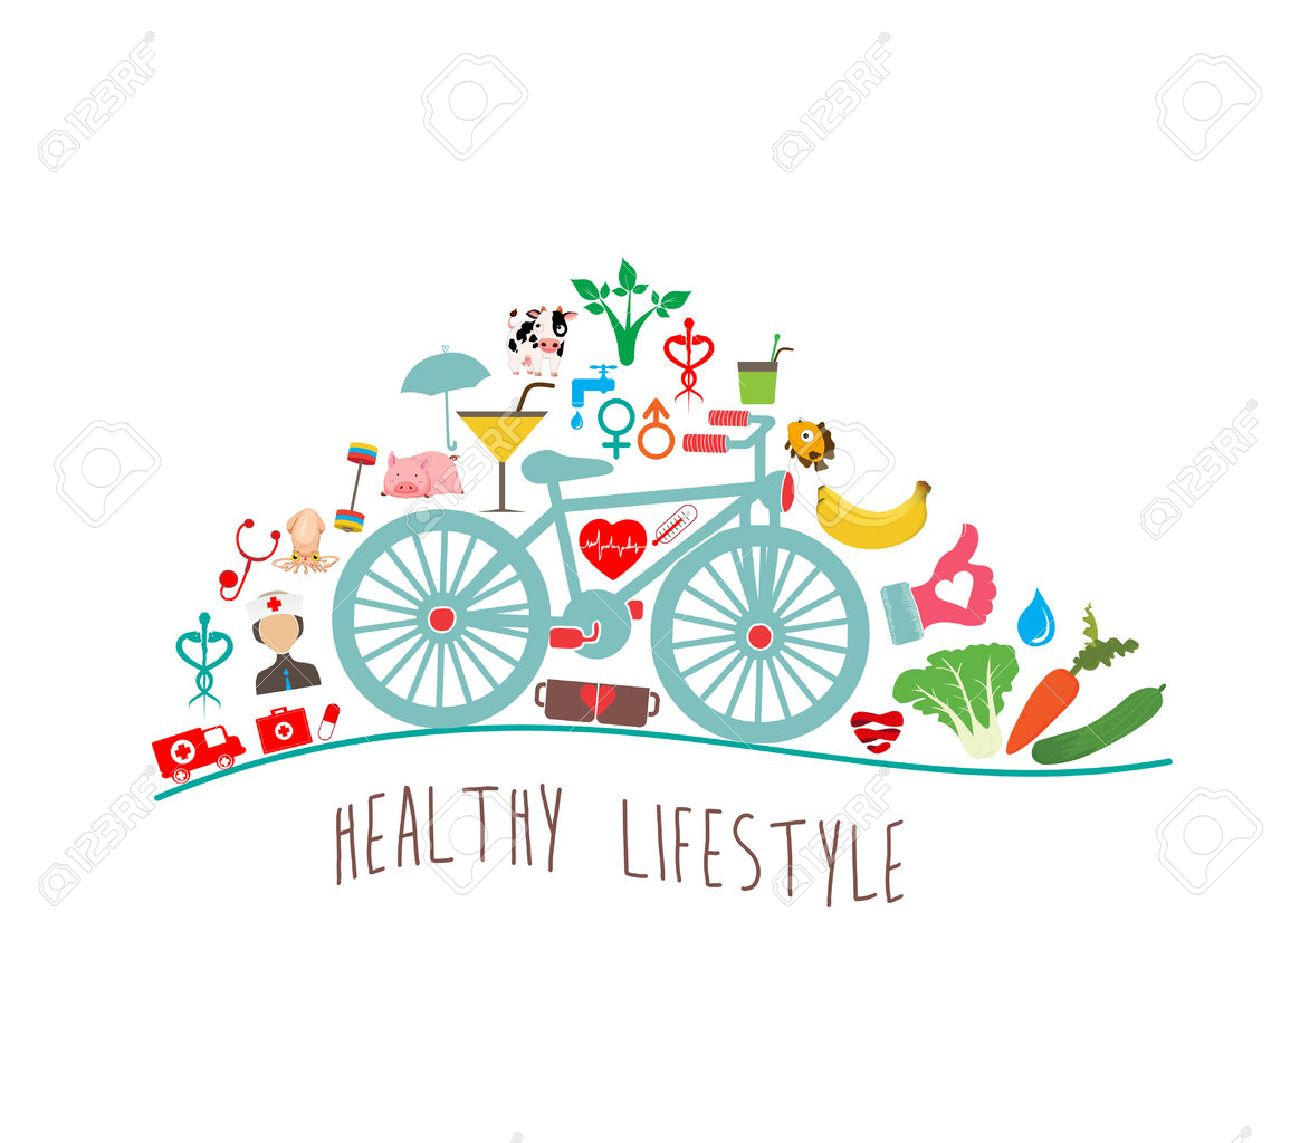 Healthy Lifestyle Background.